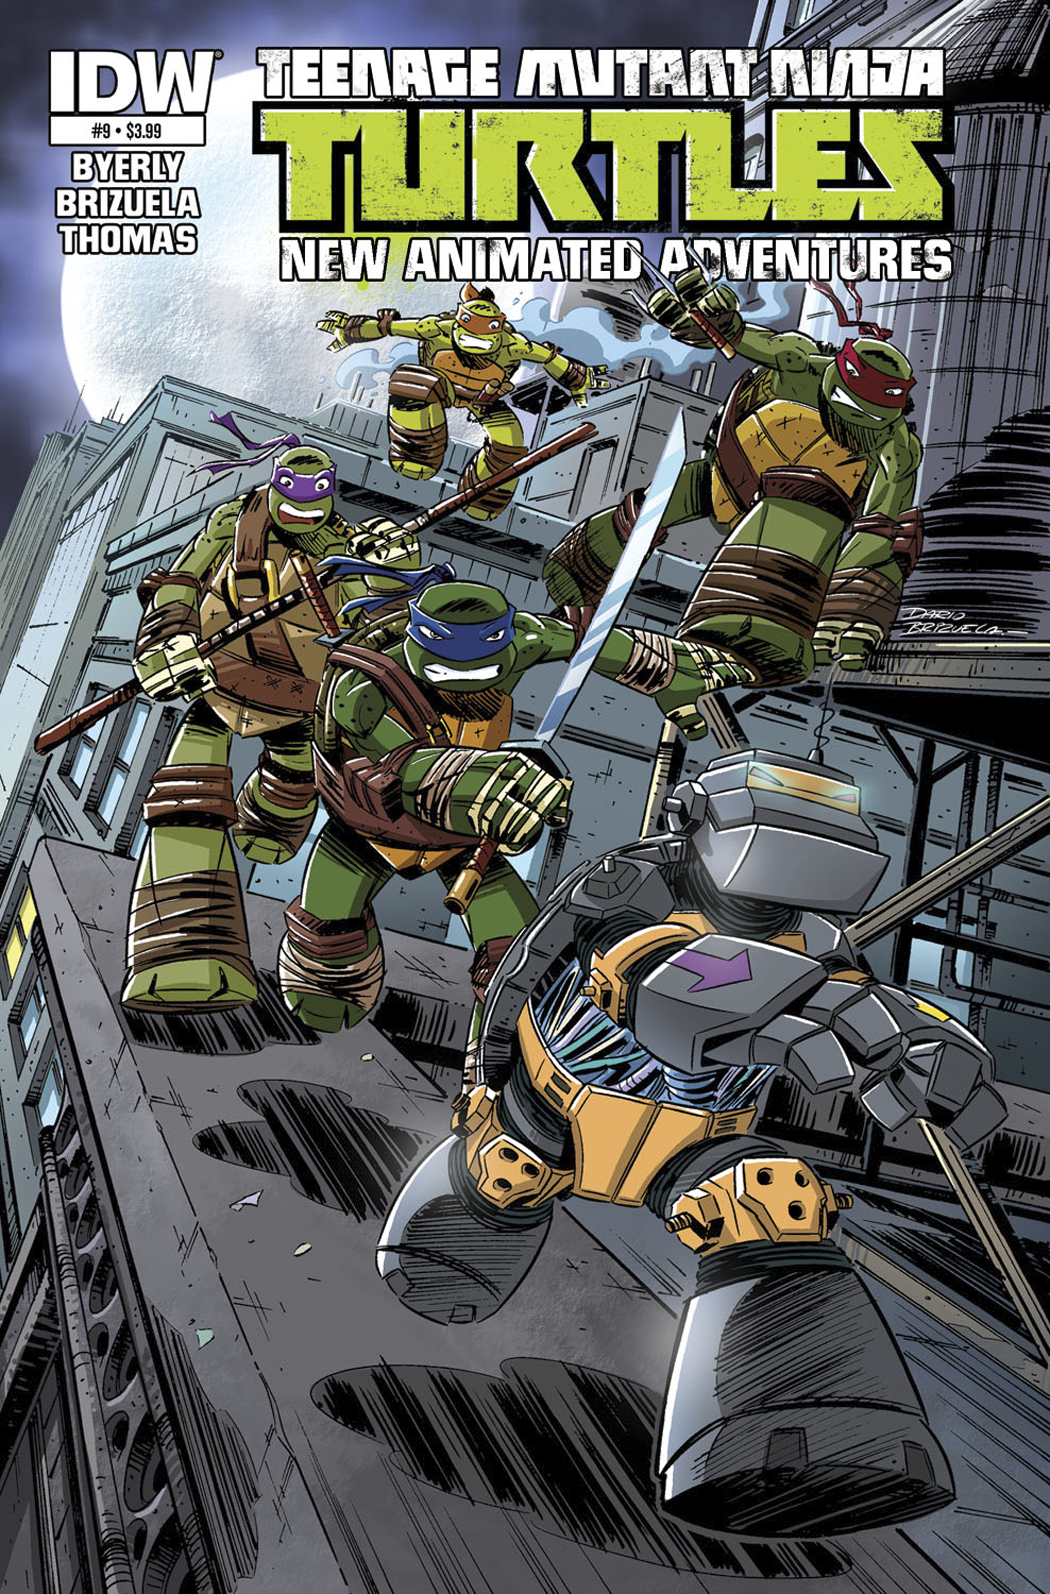 TMNT NEW ANIMATED ADVENTURES #9 FREE 10 COPY INCV